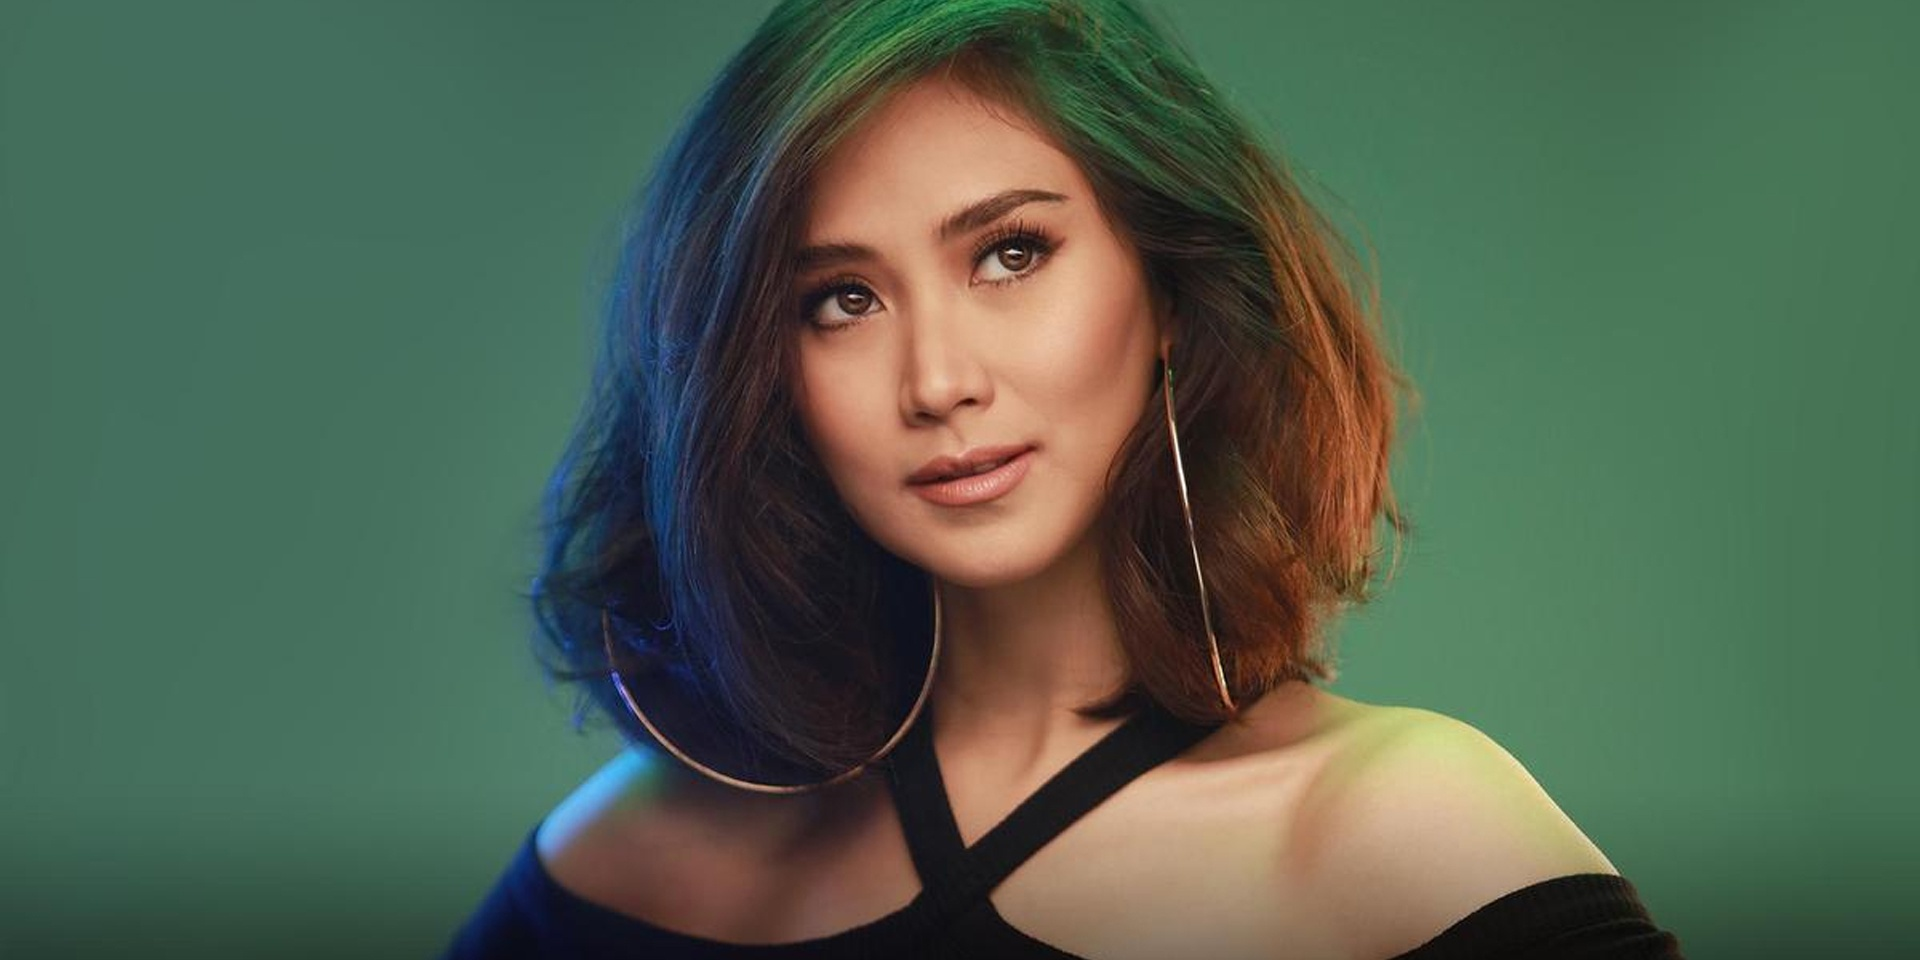 Sarah Geronimo heads to Netflix with concert film This 15 Me – watch